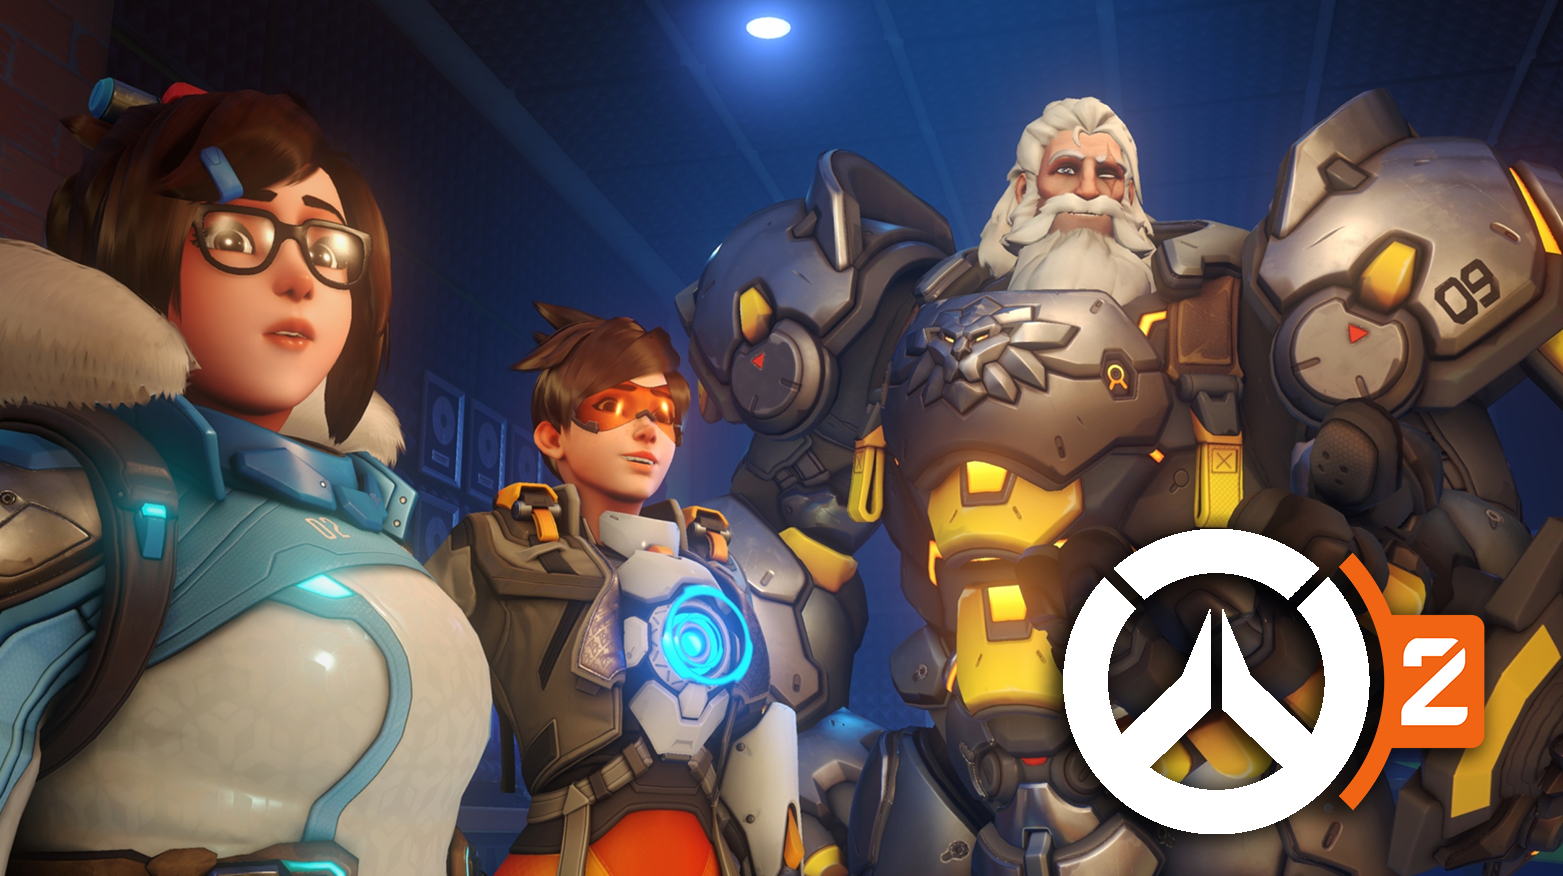 Overwatch 2 Mei, Tracer, and Reinhardt skins